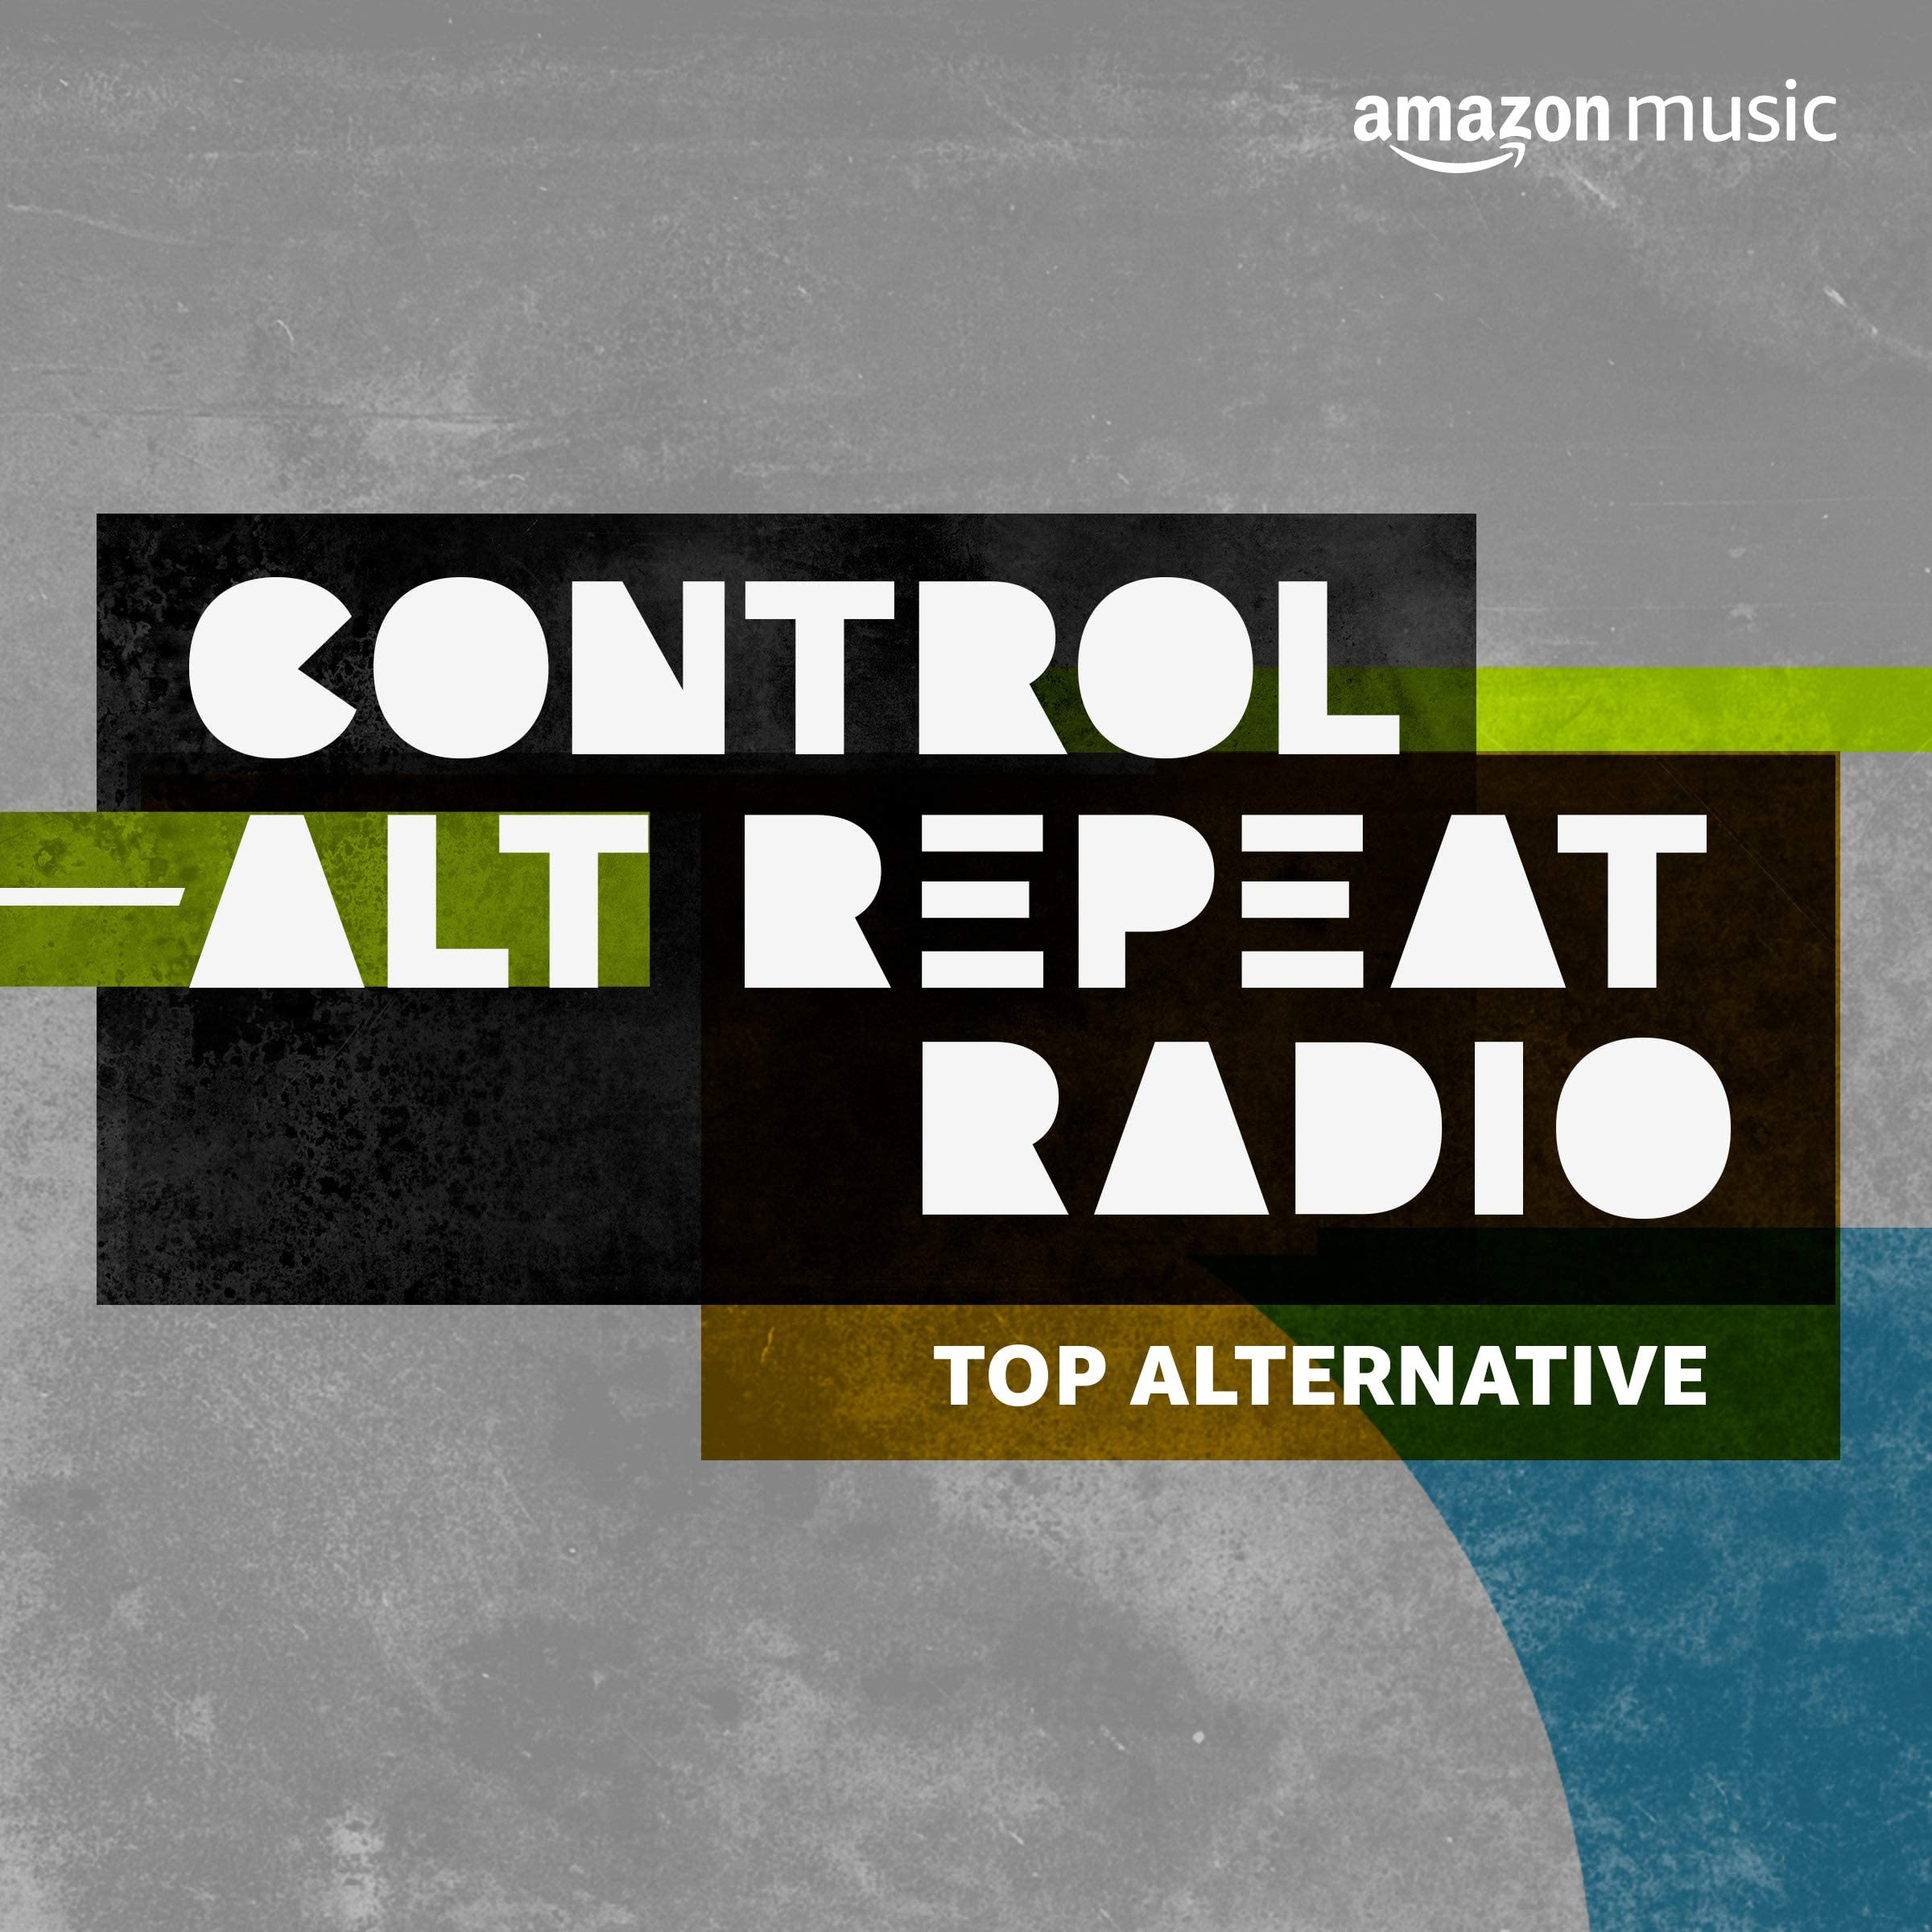 Control Alt Repeat Radio